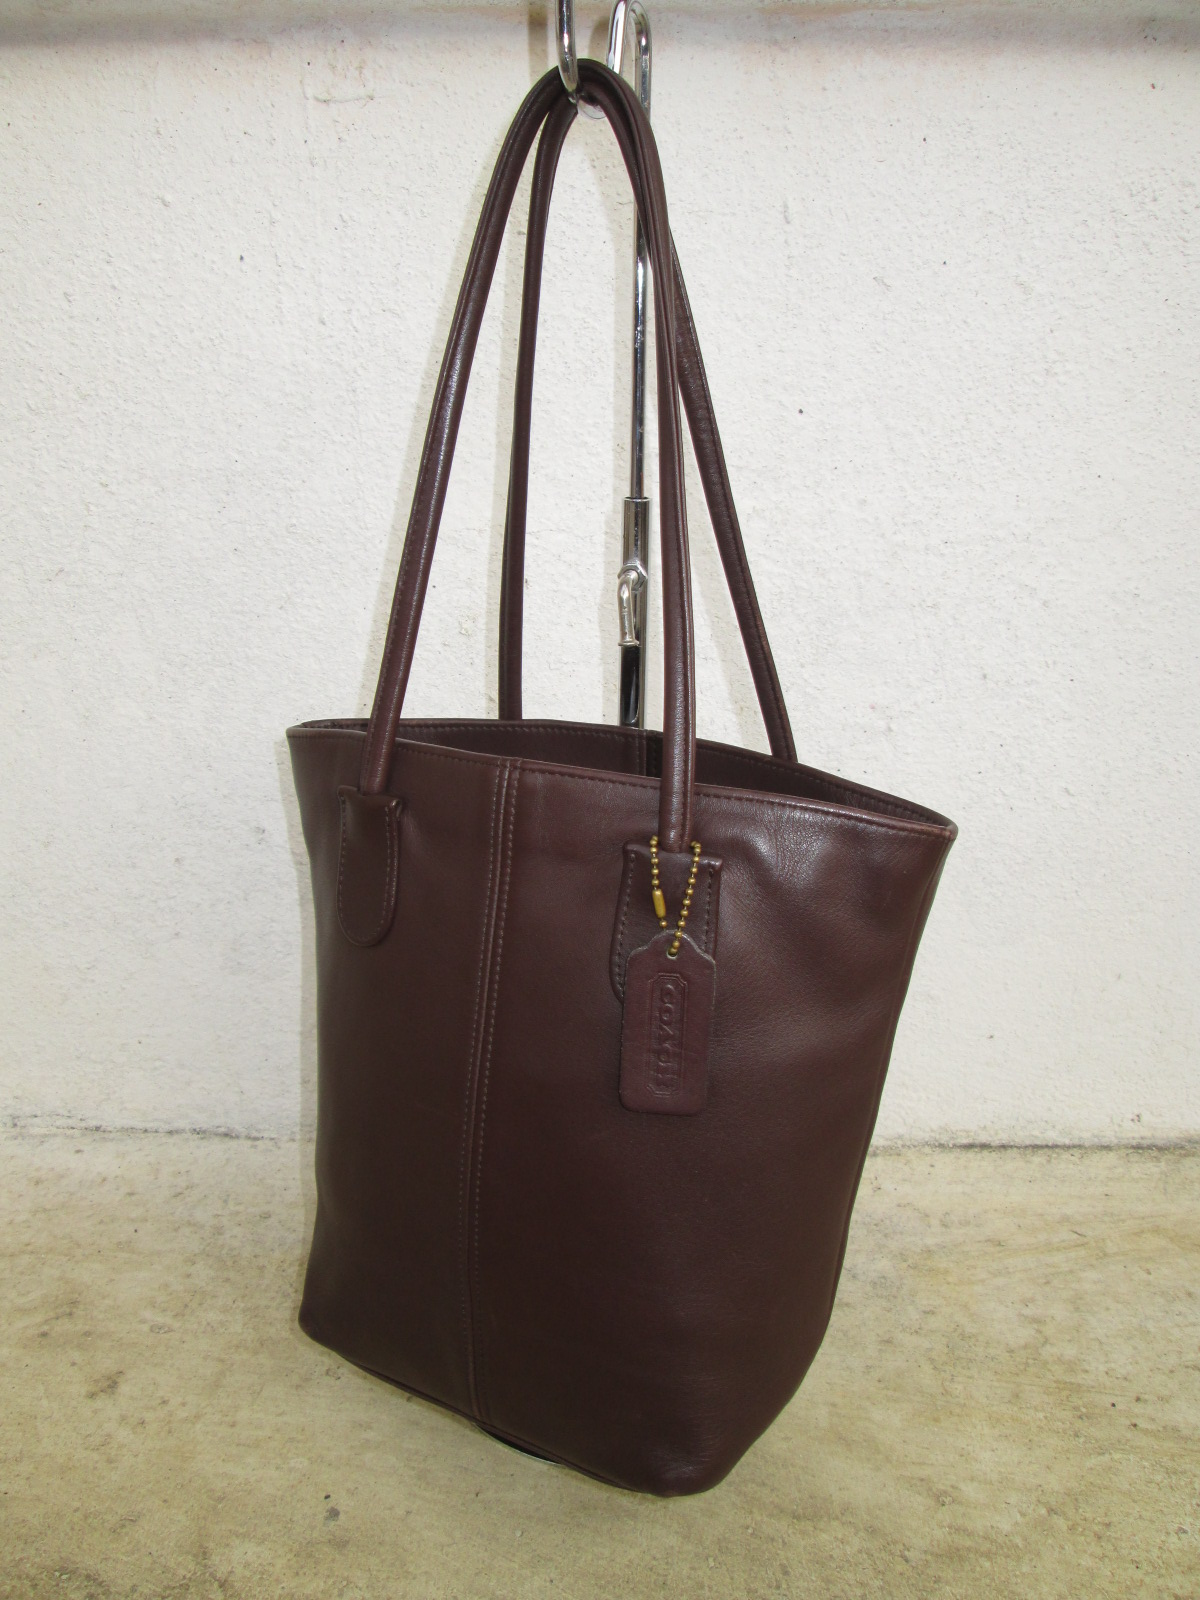 d0rayakeebag authentic vtg coach leather tote bag sold. Black Bedroom Furniture Sets. Home Design Ideas